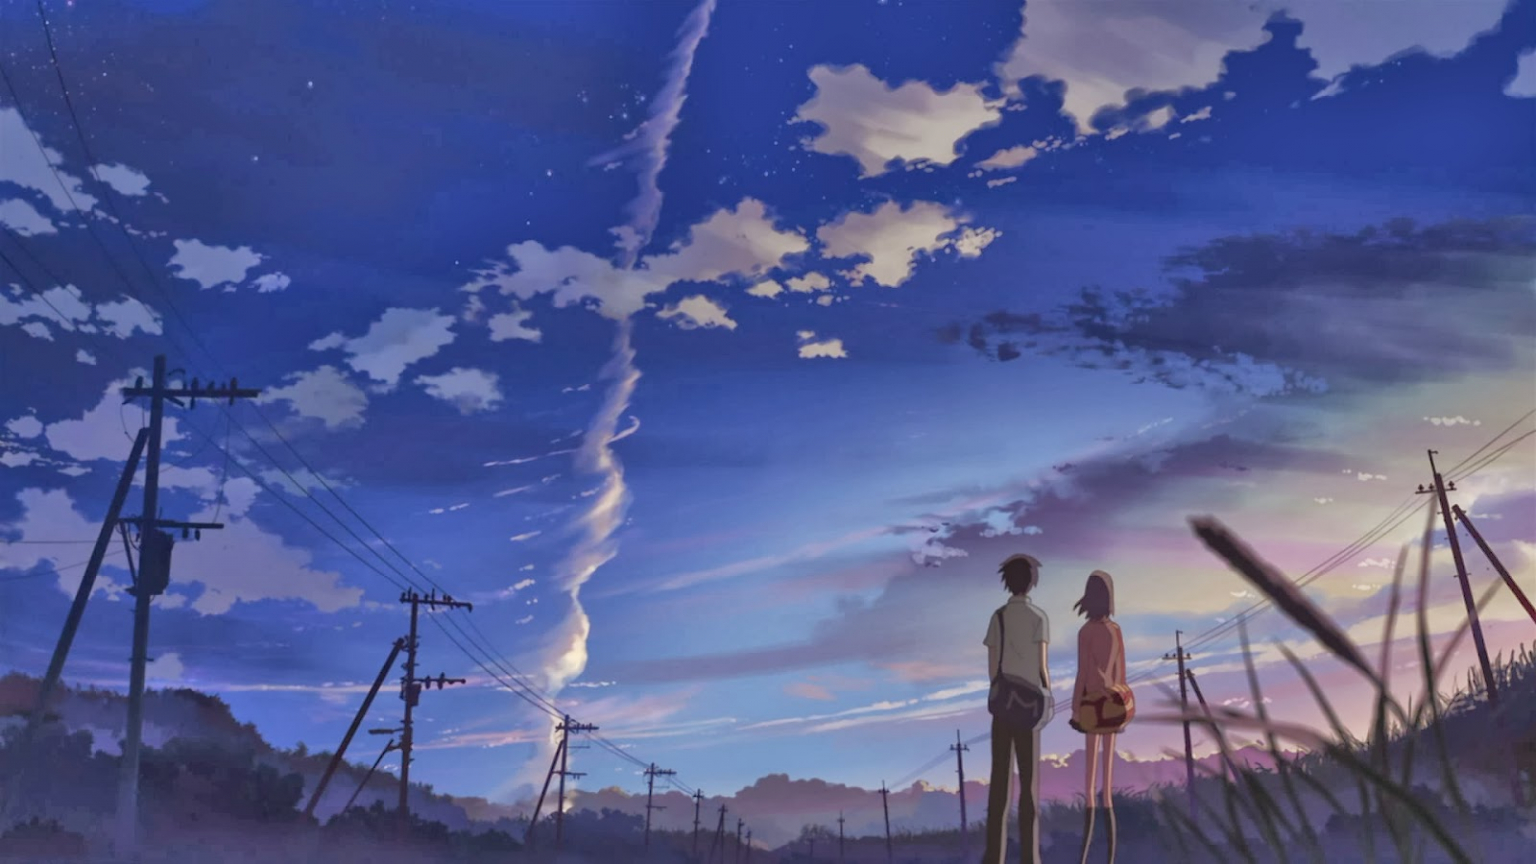 Free Download Free Hd Wallpaper Download 5 Centimeters Per Second